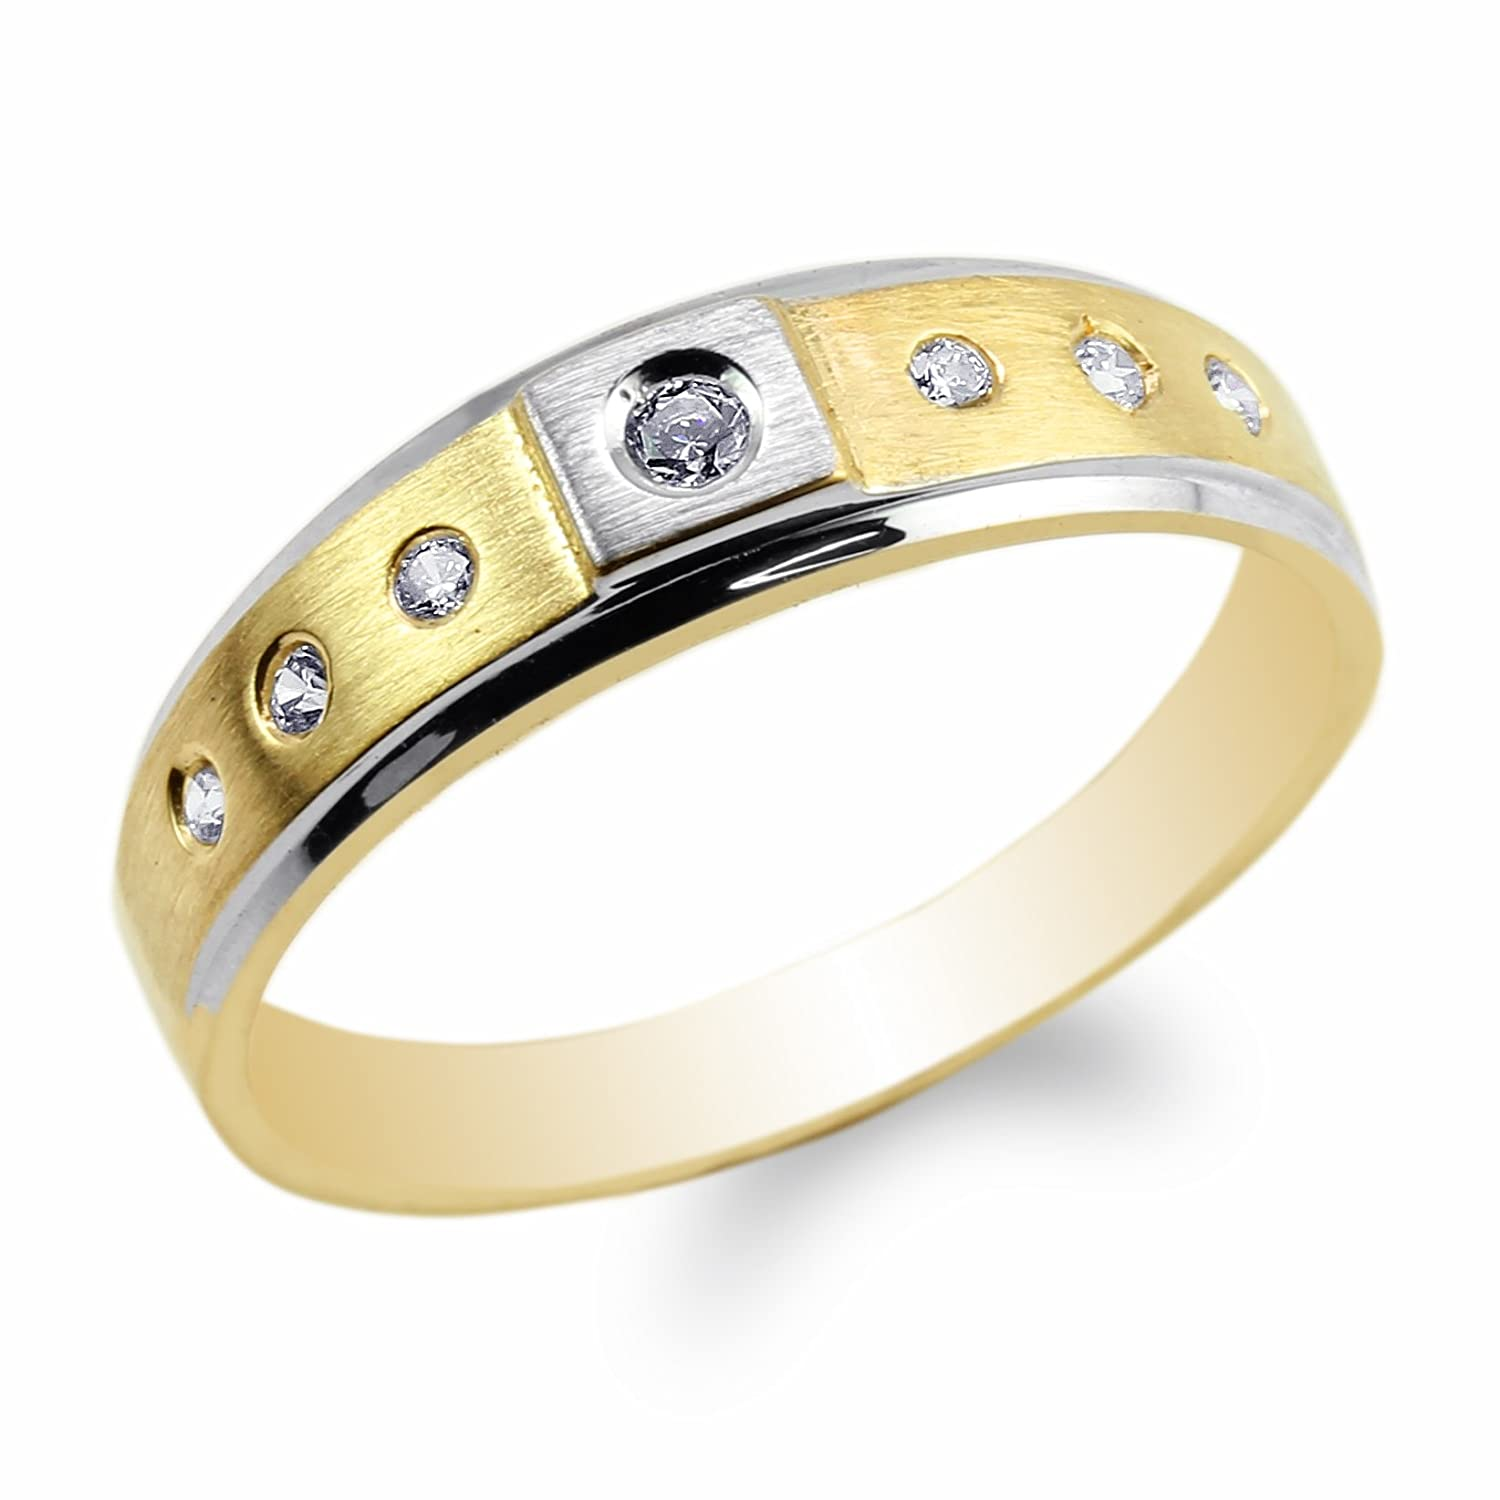 JamesJenny 10K Yellow Gold Two Tone Color Band with Round CZ Embedded Ring Size 7-12